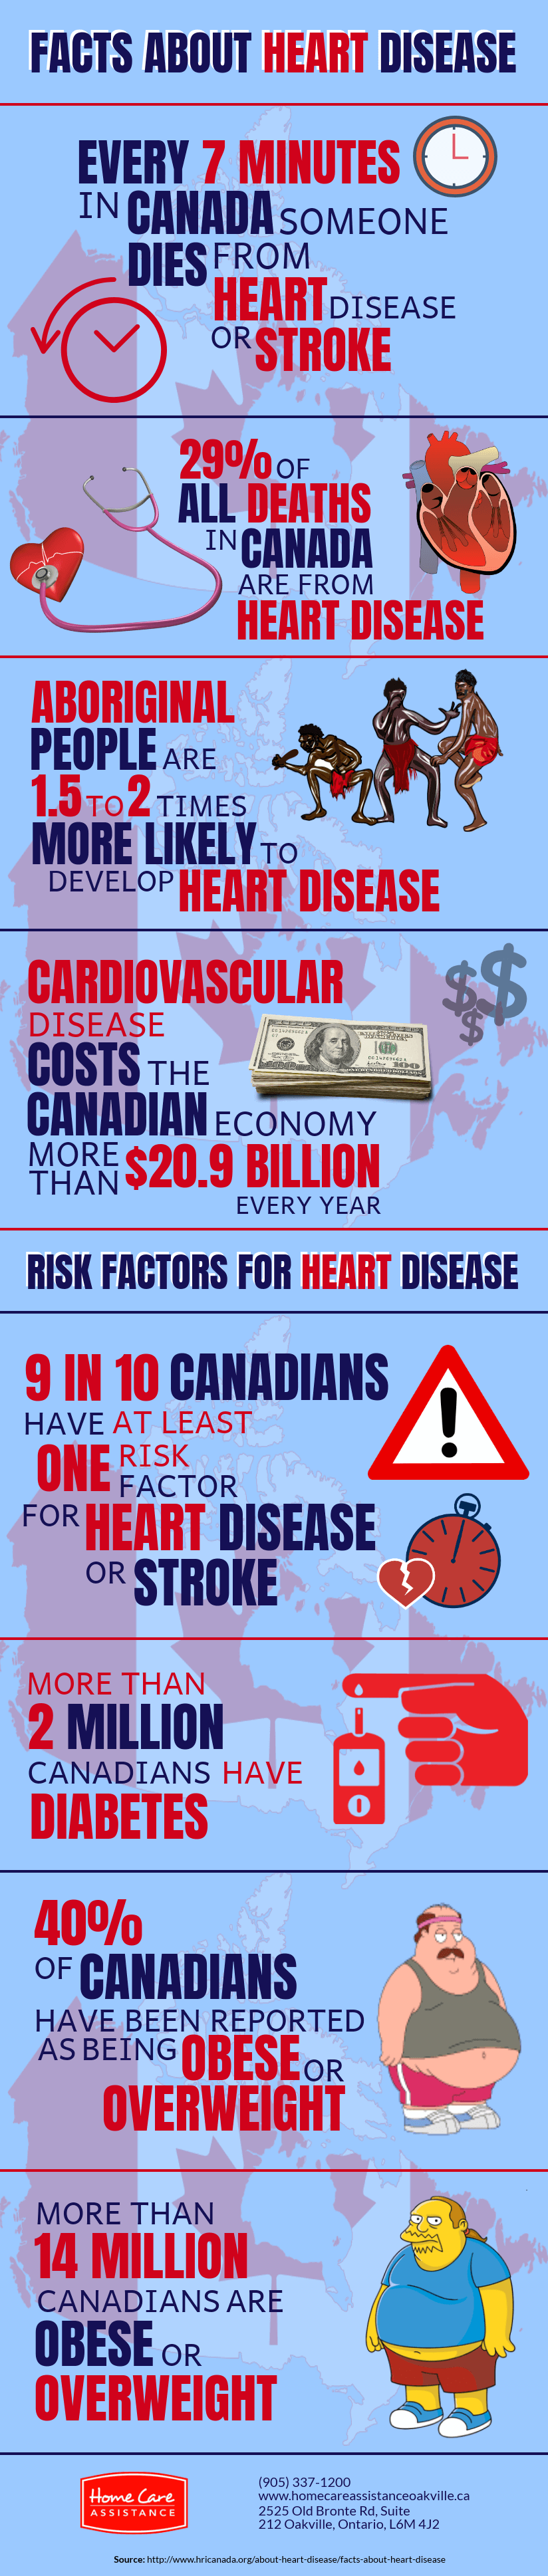 Important Details About Heart Disease